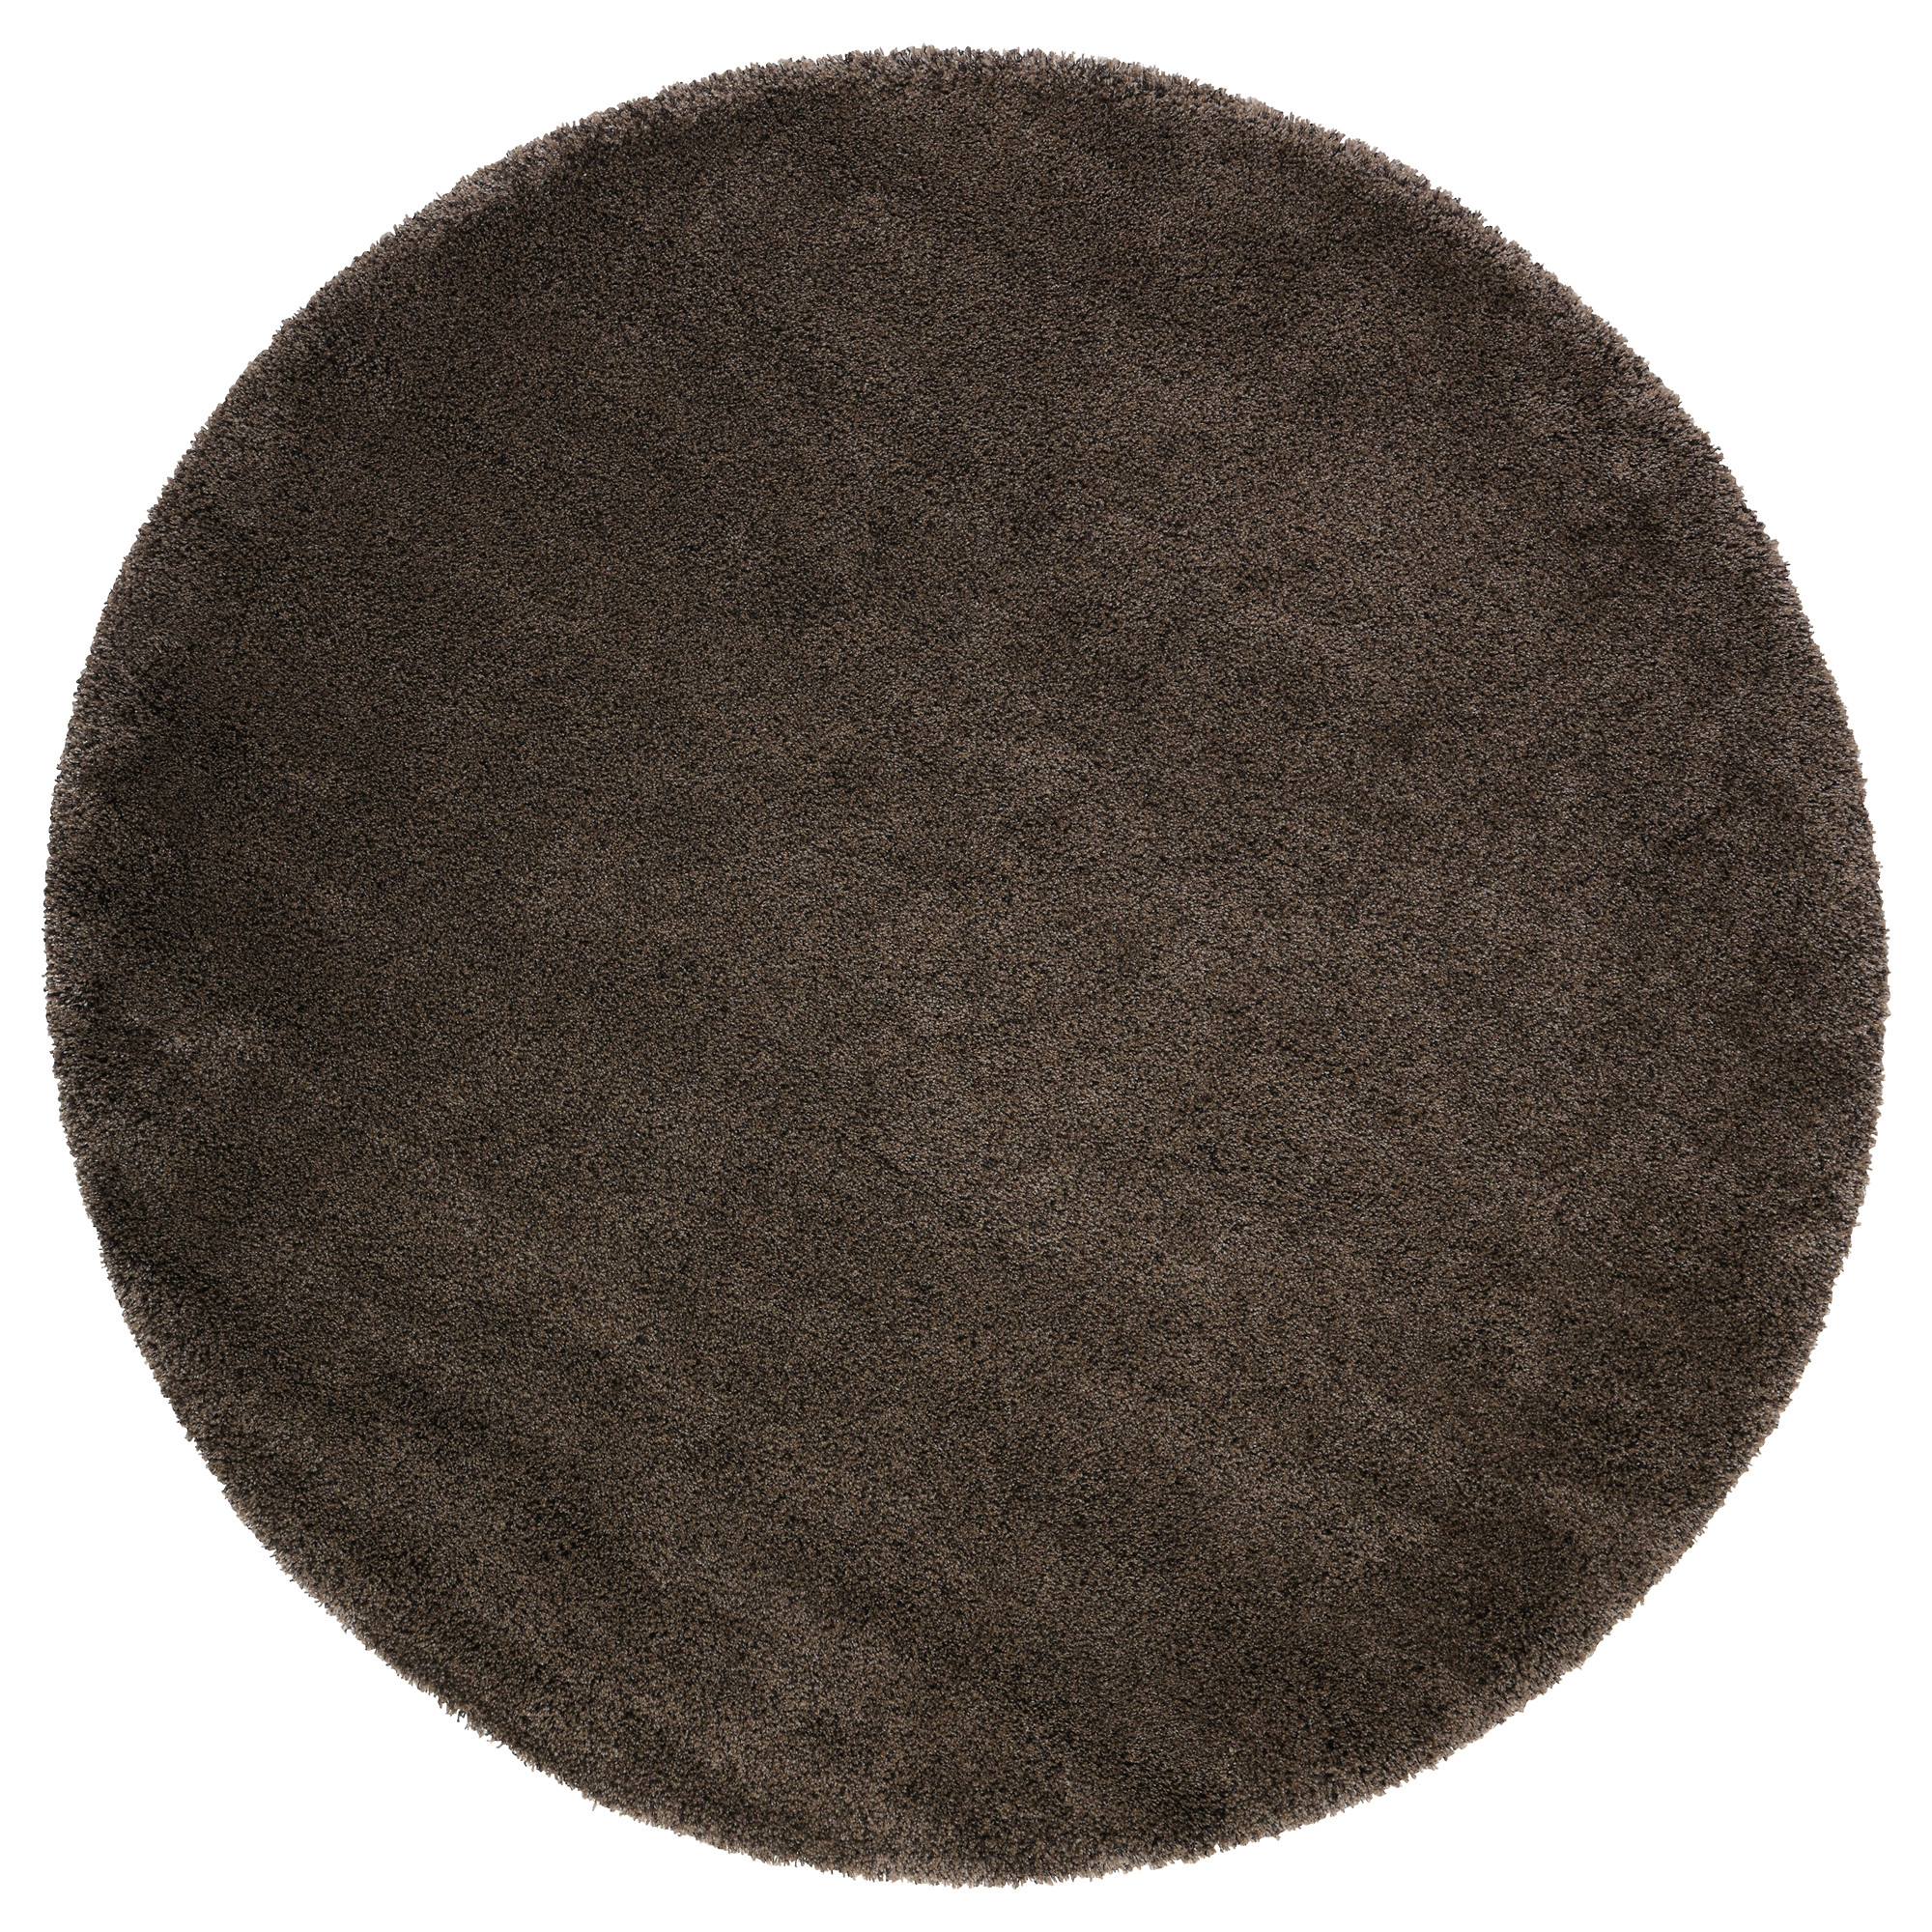 Why Should You Look At Round Rugs Internationalinteriordesigns Pertaining To Circular Rugs (View 12 of 15)